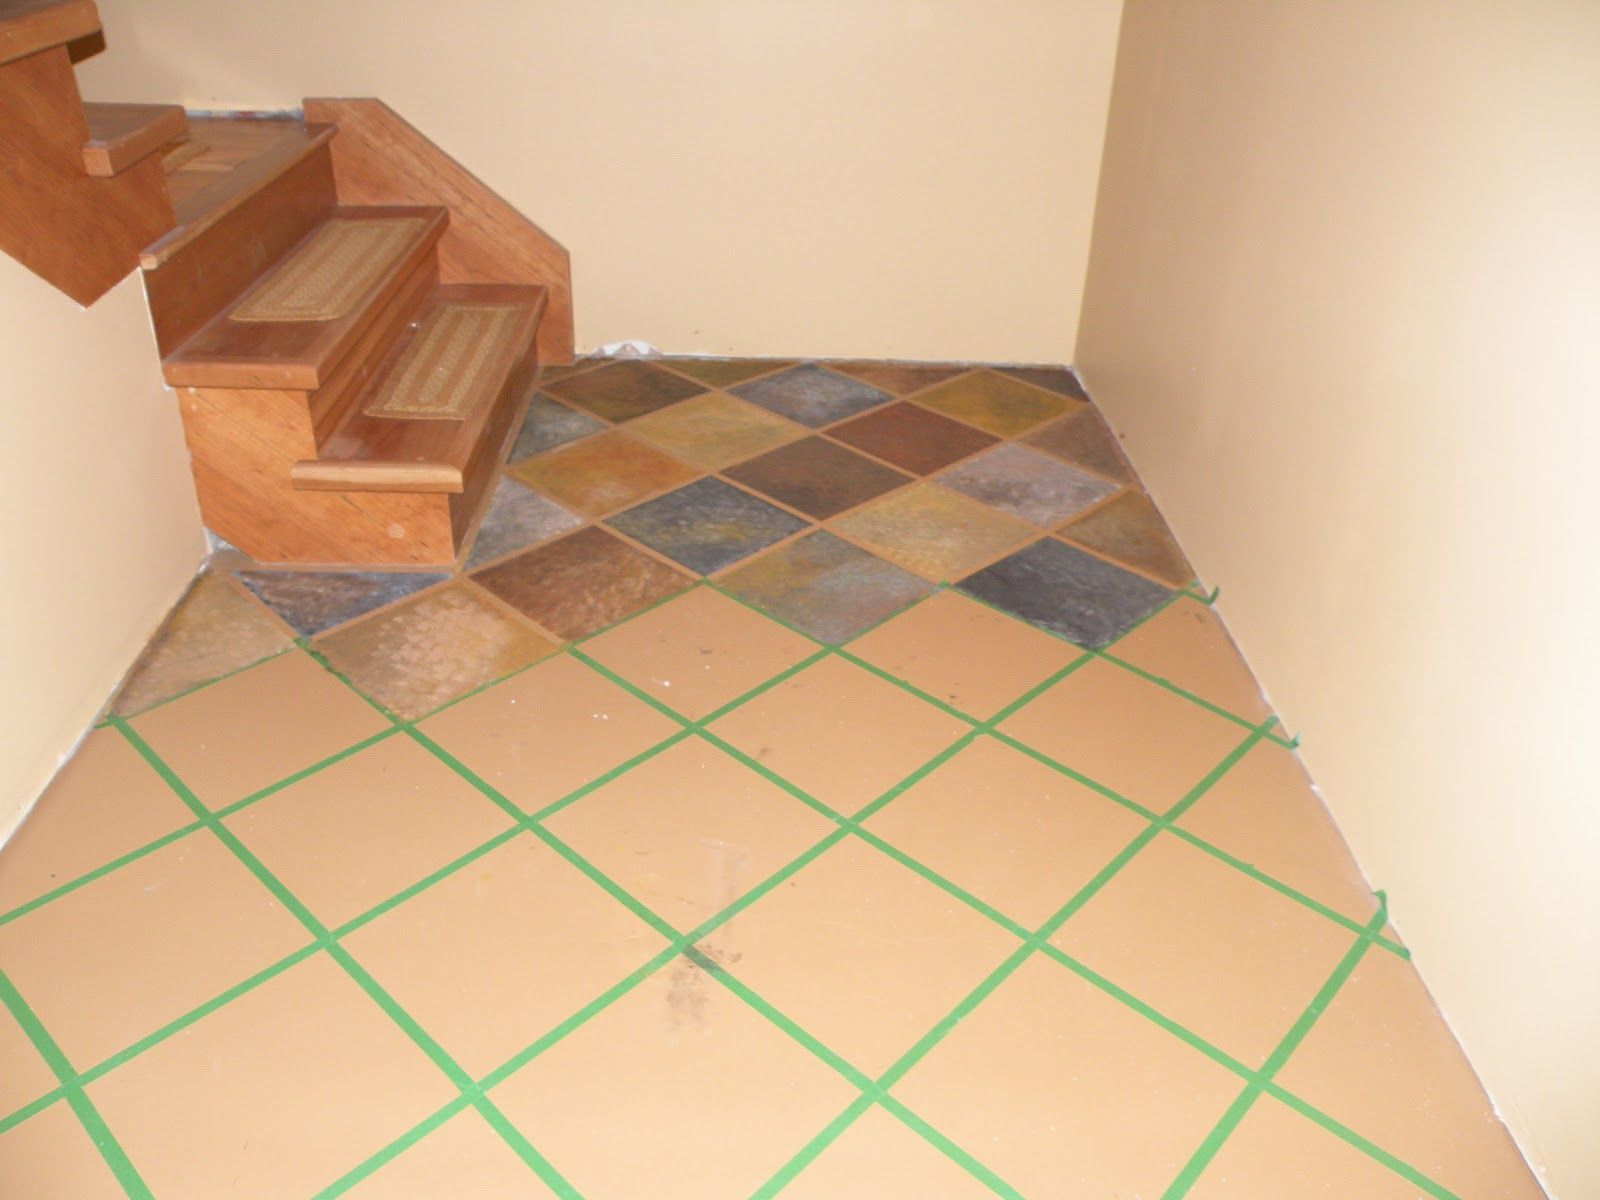 Painting Floor Tiles In Kitchen Paint Tile Base Coat Of Concrete Floor Paint Then 12 Tiles